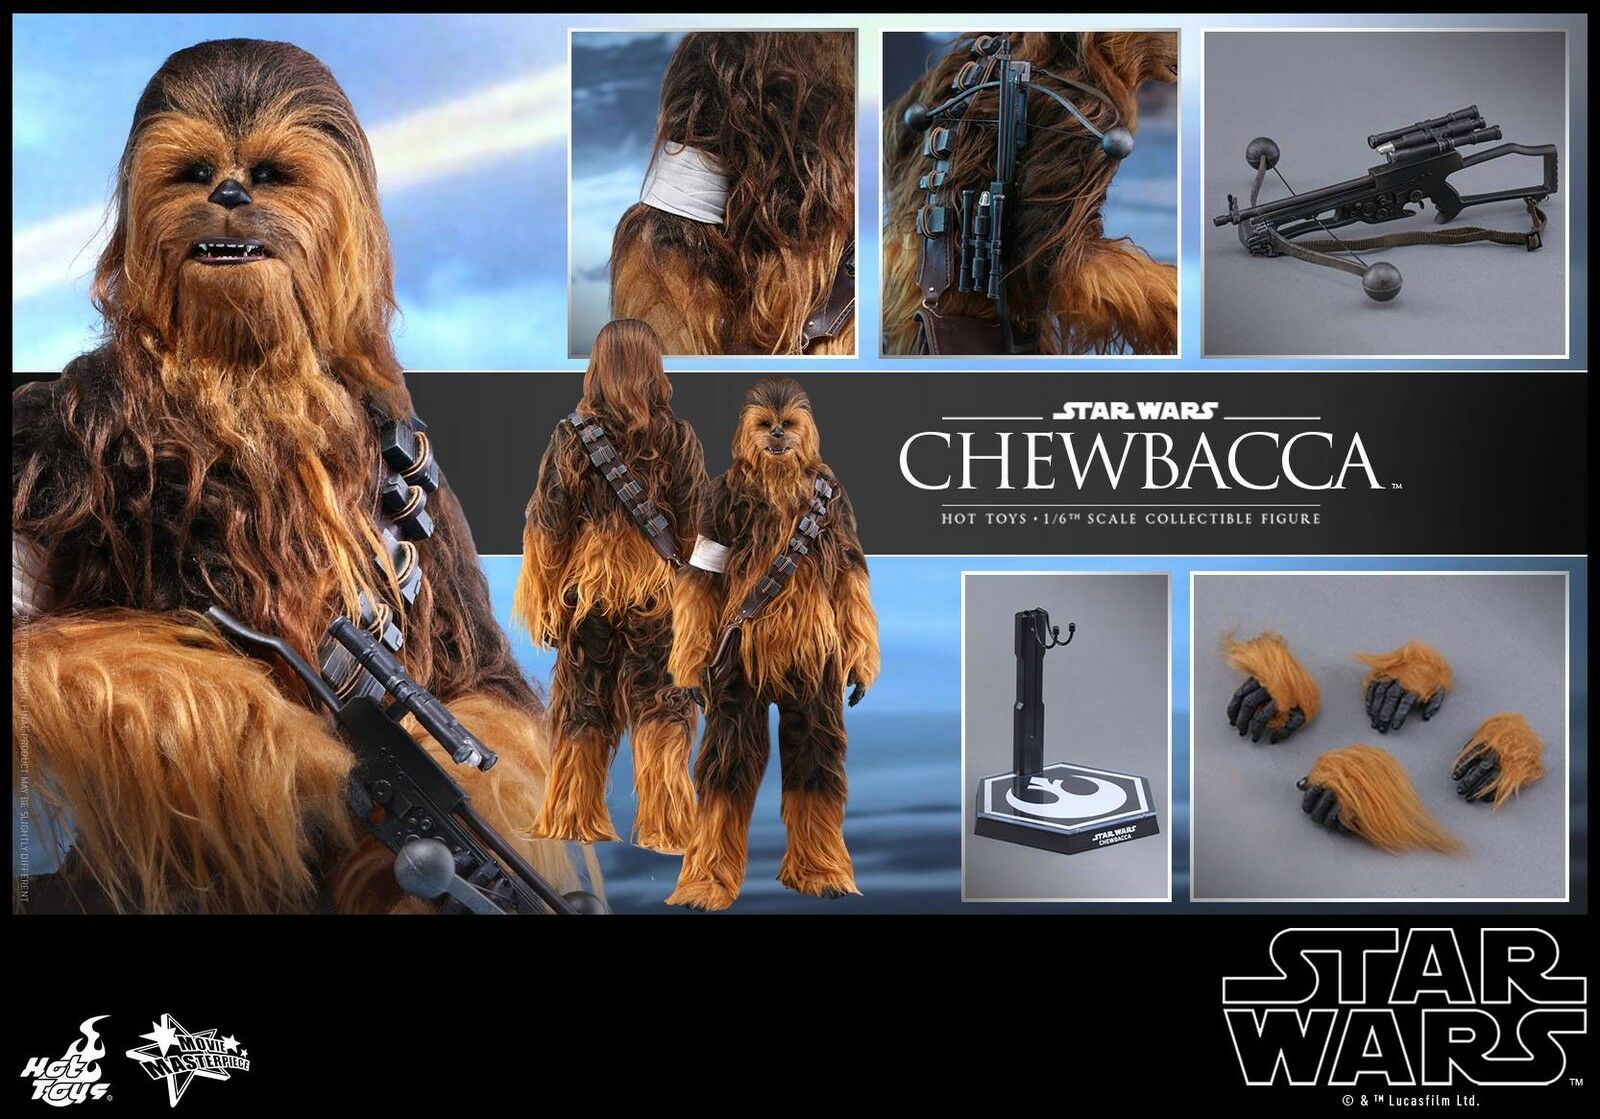 HOT TOYS 1/6 STAR WARS THE FORCE FORCE FORCE AWAKENS MMS375 CHEWBACCA MASTERPIECE FIGURE 95df1c